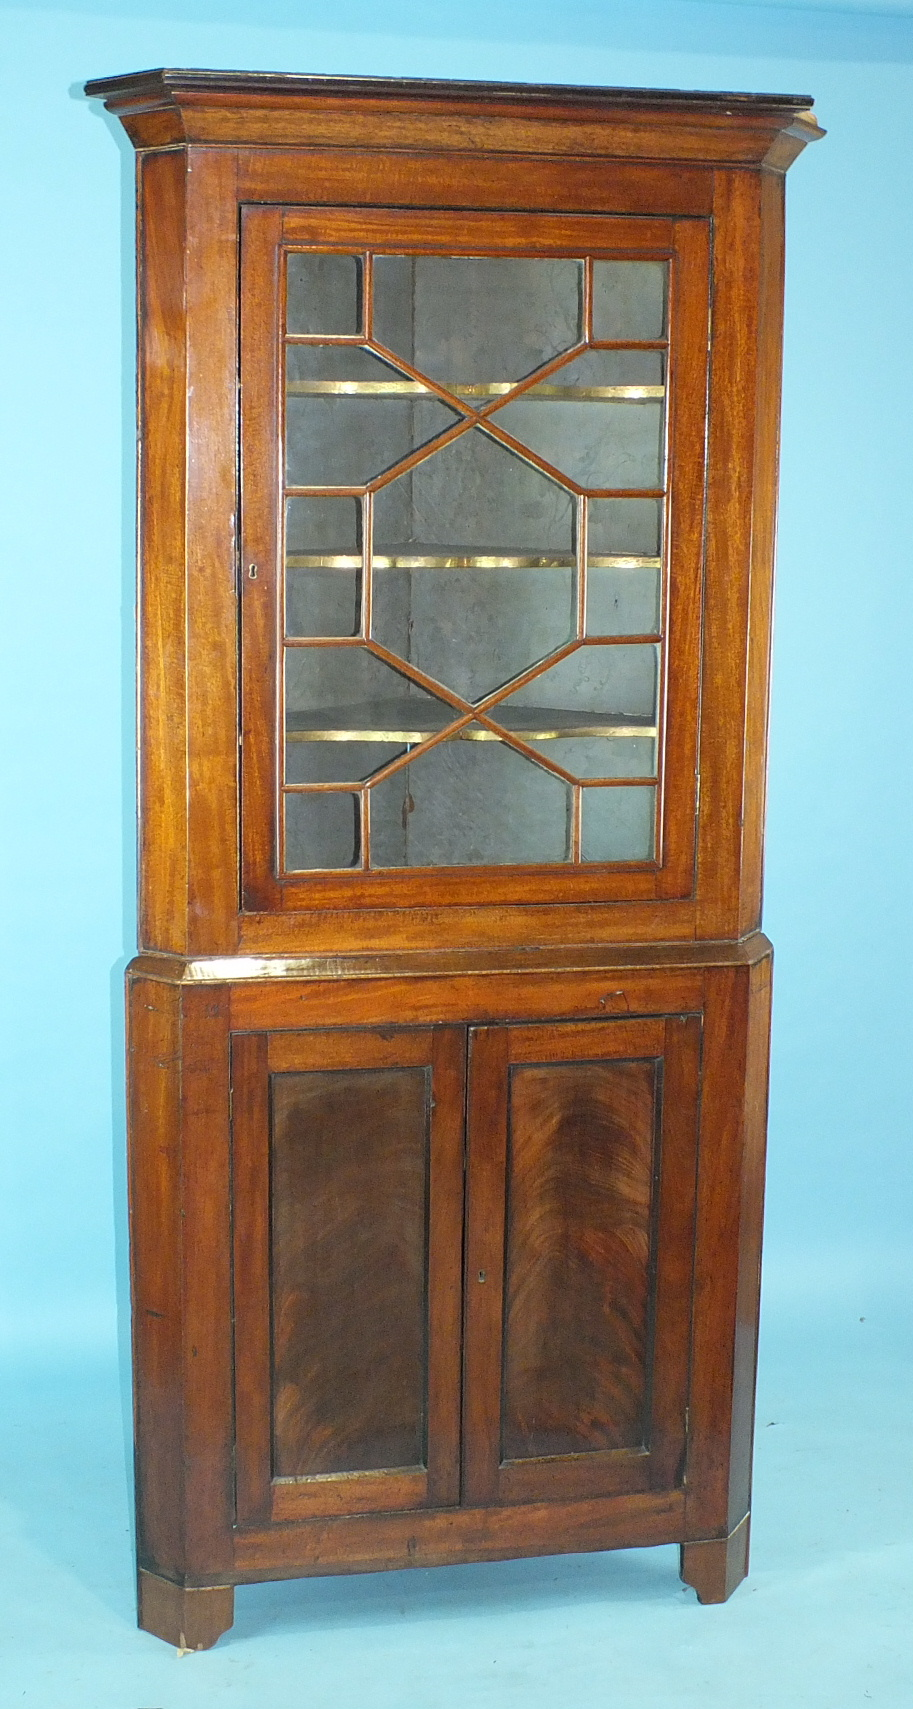 Lot 37 - A Georgian mahogany corner cupboard, the moulded cornice above an astragal-glazed door and a pair of